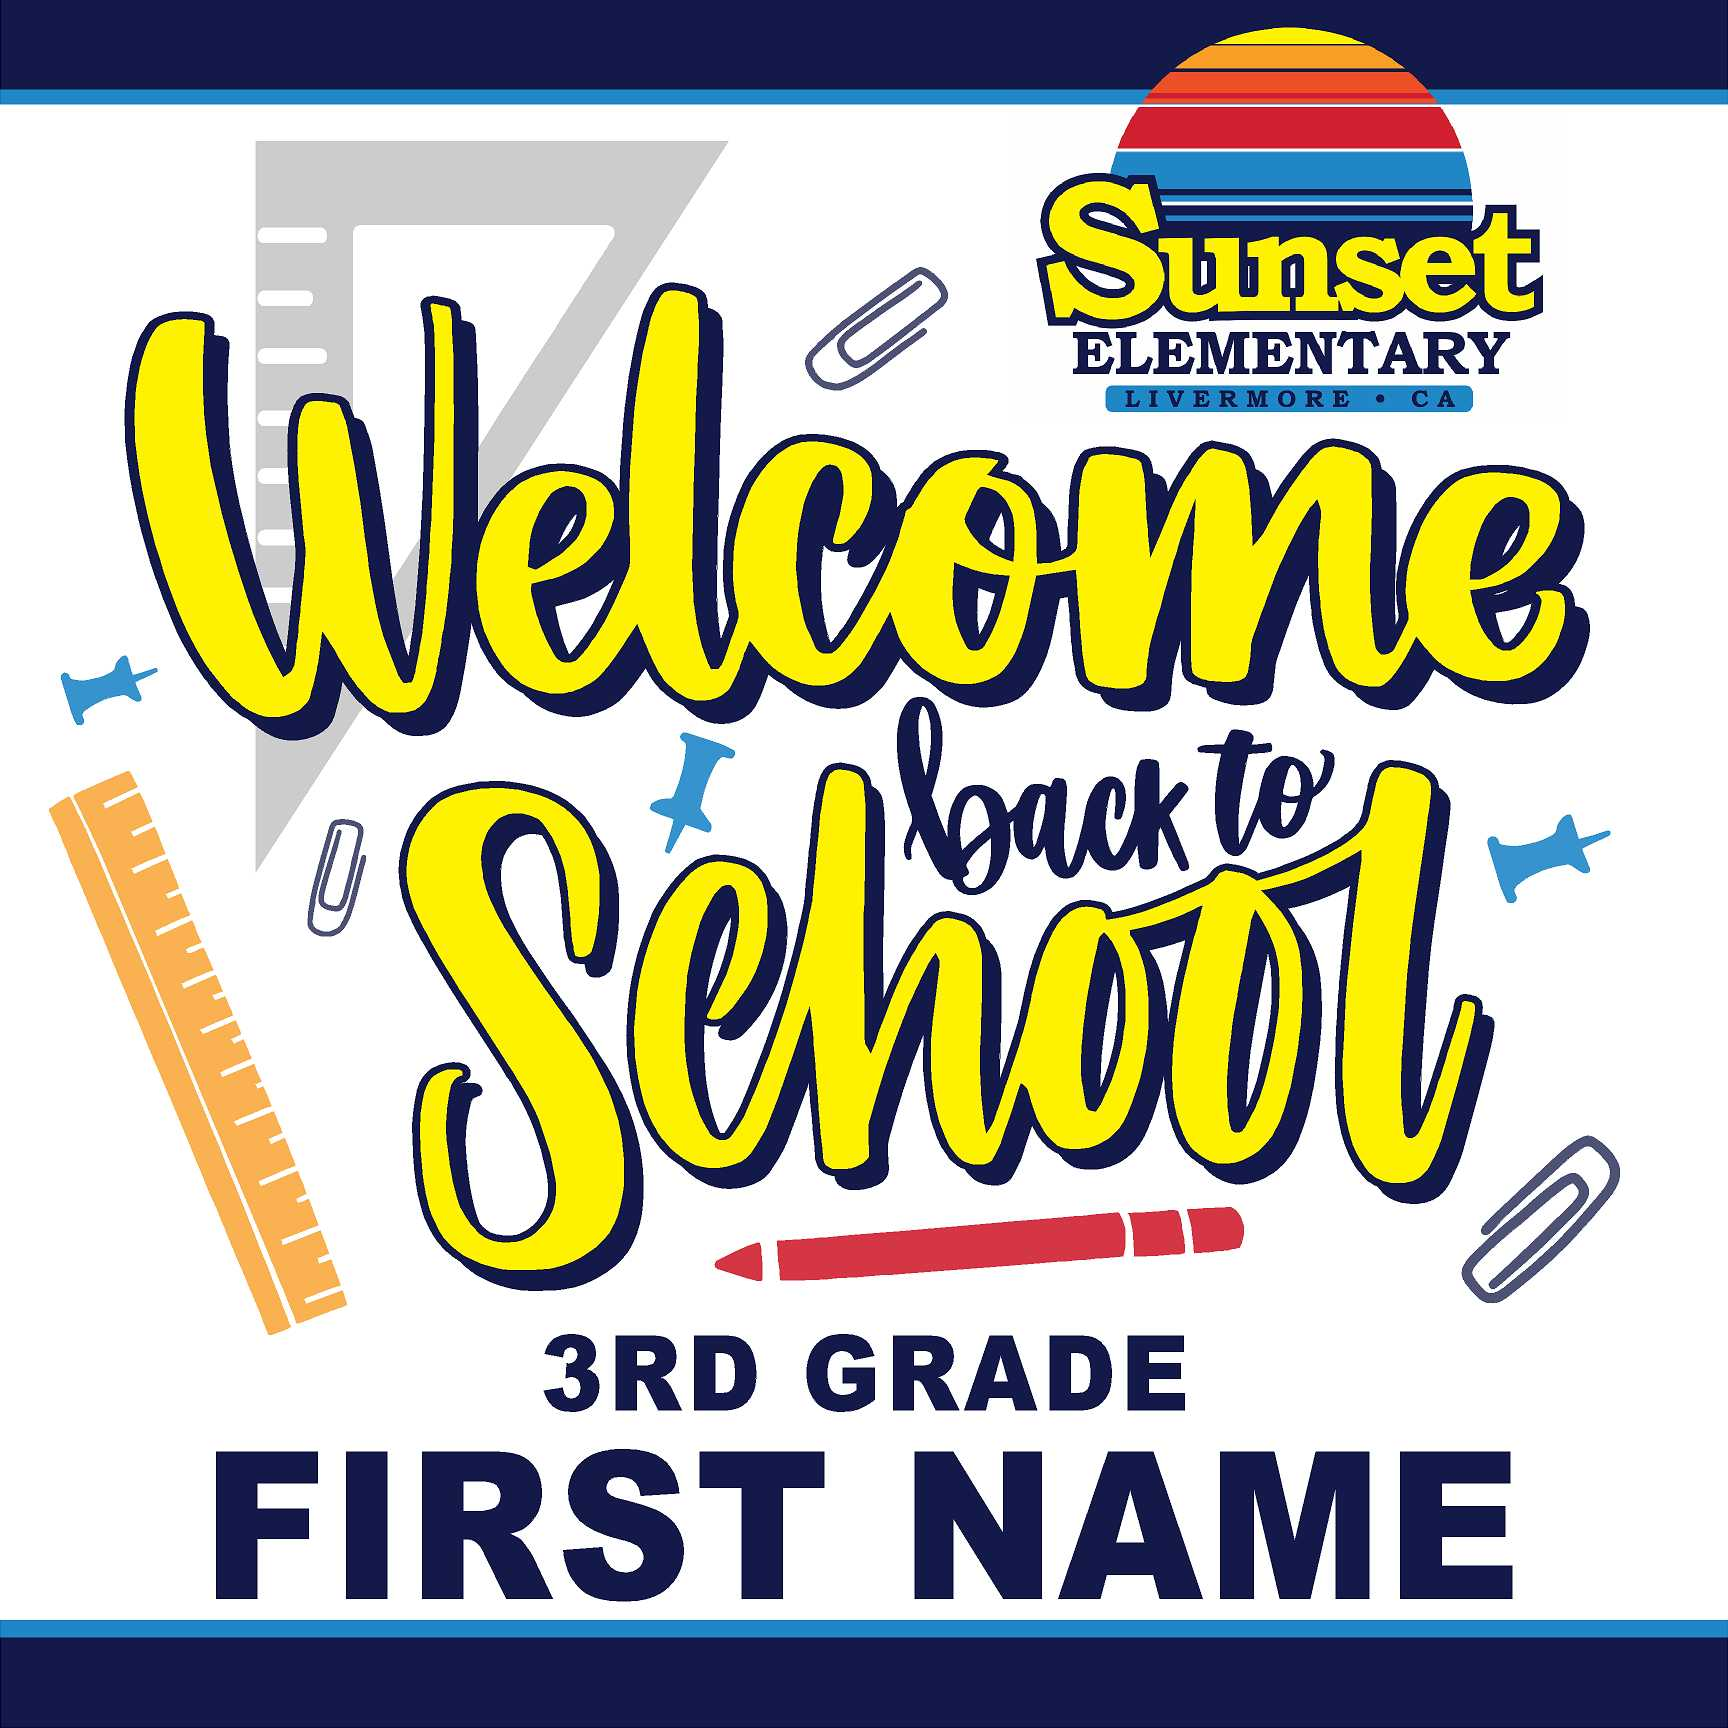 Sunset Elementary 3rd Grade Back to School 24x24 Yard Sign (includes installation in your yard)